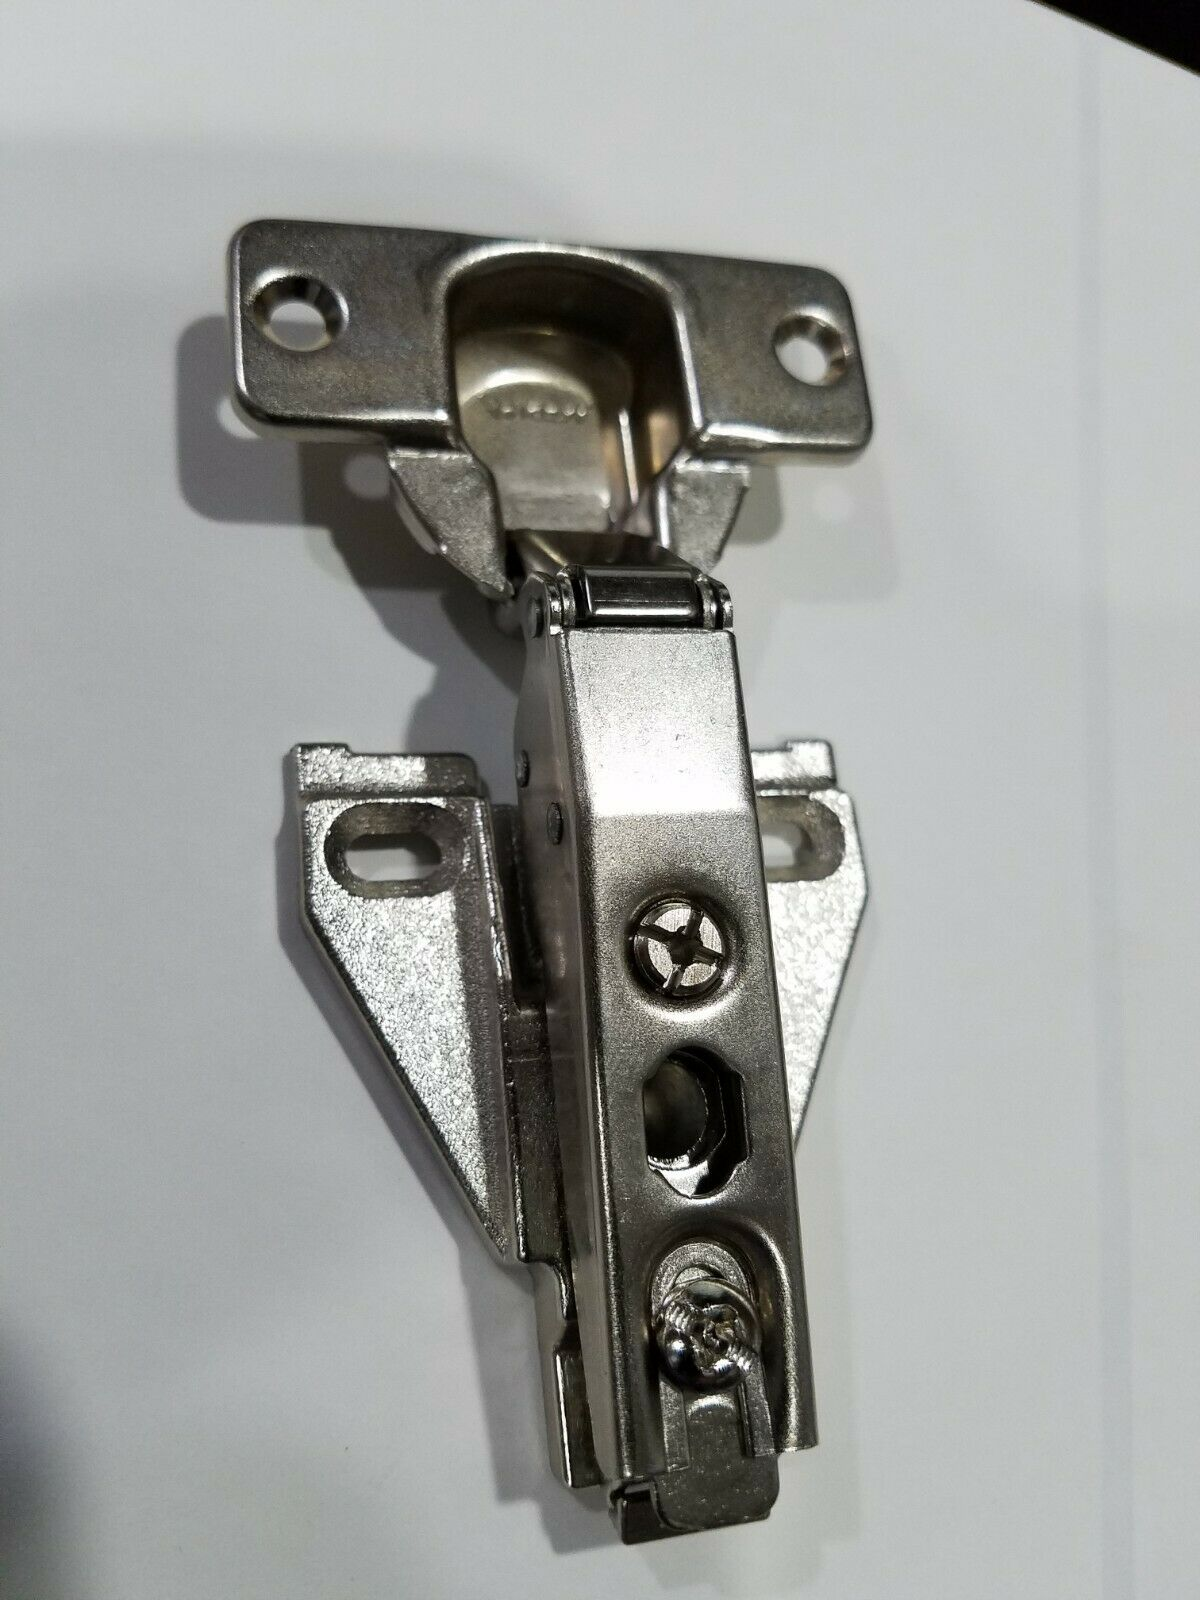 502.321.00.00 520.200.21.01 TWIN MEPLA 110 degree hinge 652.221.65.02